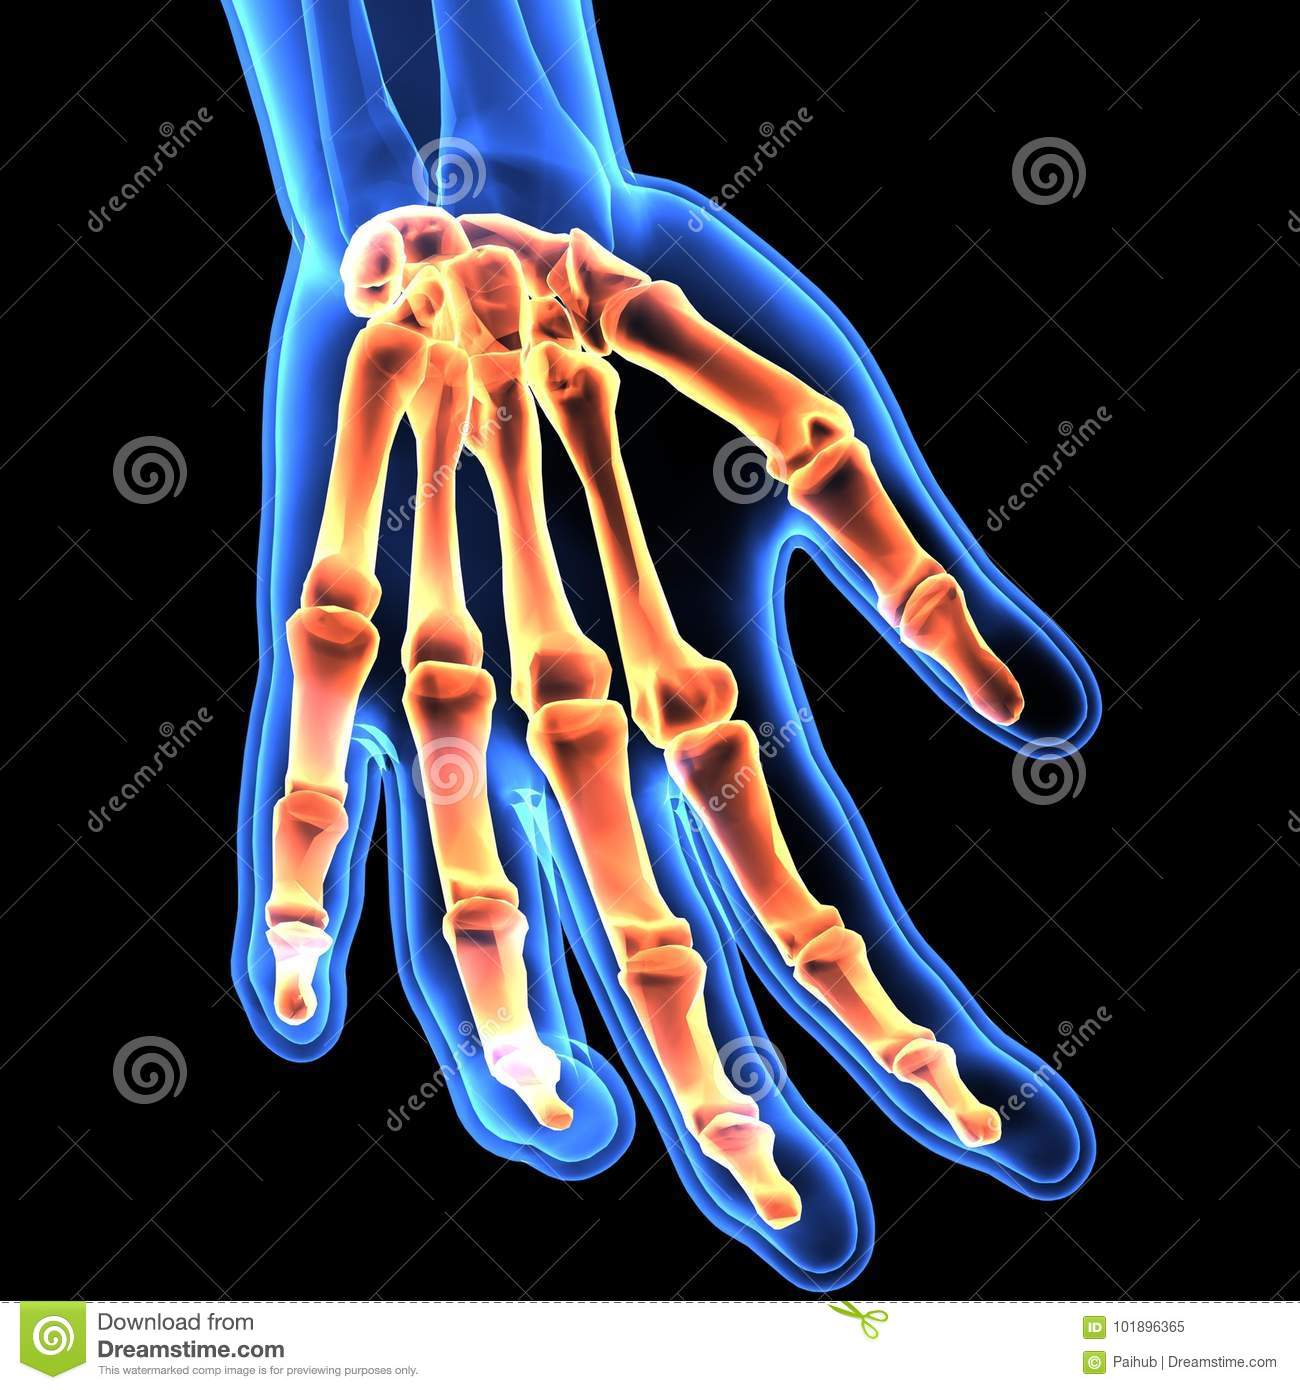 3d Illustration Of Hand Skeleton Part Of Human Skeleton Stock